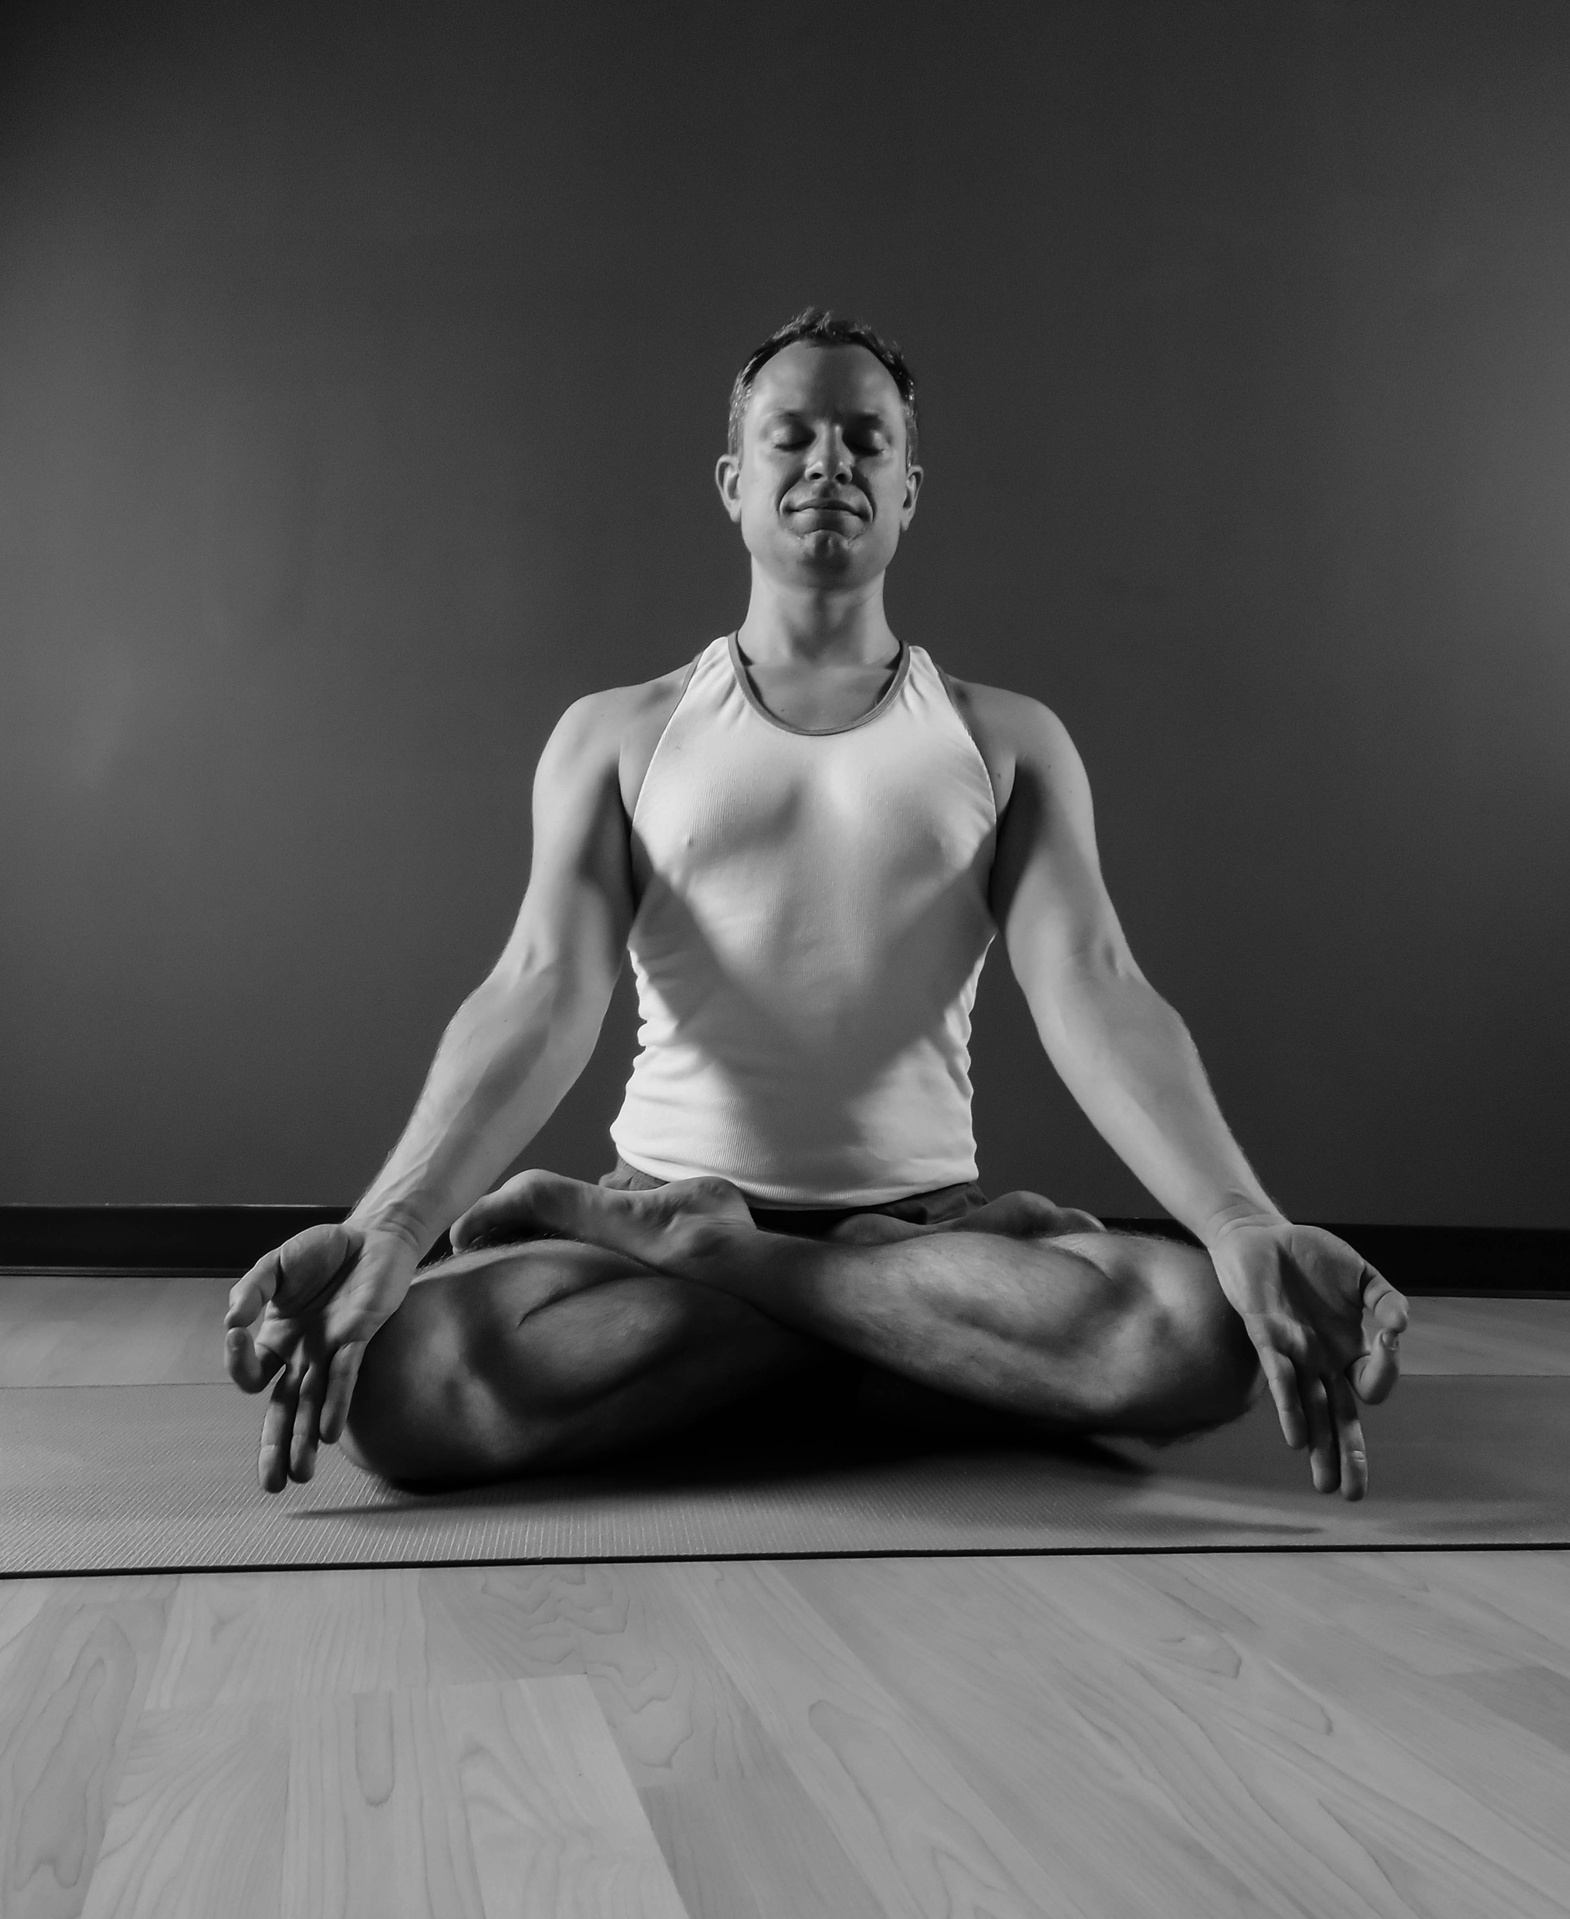 The Heart of Yoga - Karuna's Signature Yoga Study ProgramThis nine-month program is an intensive yoga experience created to provide a next-step for serious yoga students to immerse themselves in the principles and practices of yoga.